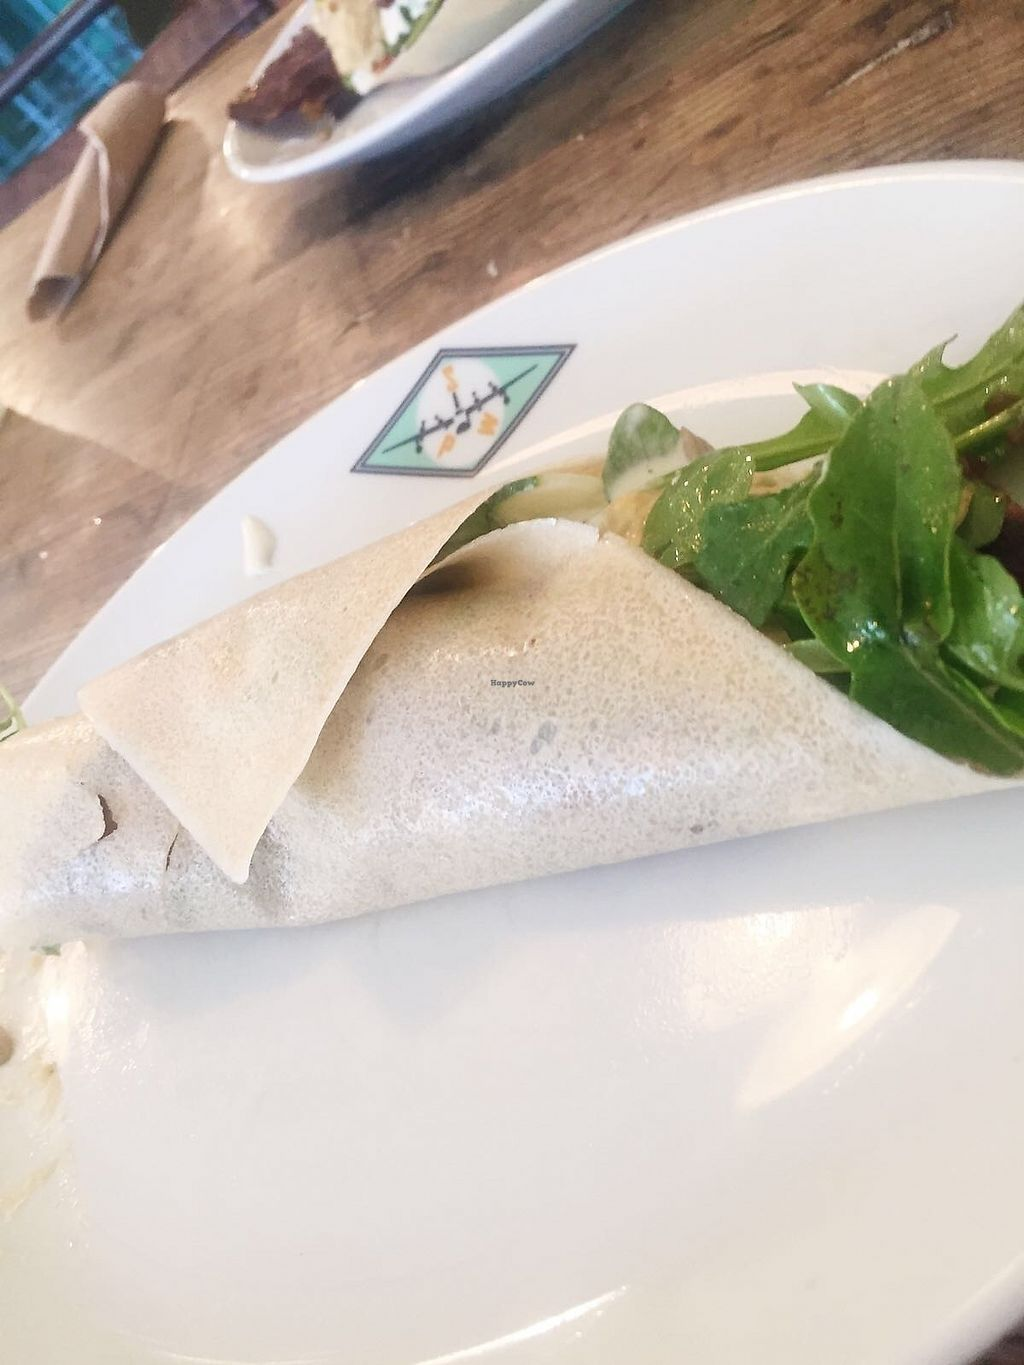 "Photo of The Seaplane Works  by <a href=""/members/profile/TARAMCDONALD"">TARAMCDONALD</a> <br/>Amazing coconut bread hummus salad wrap <br/> August 22, 2017  - <a href='/contact/abuse/image/94018/295913'>Report</a>"